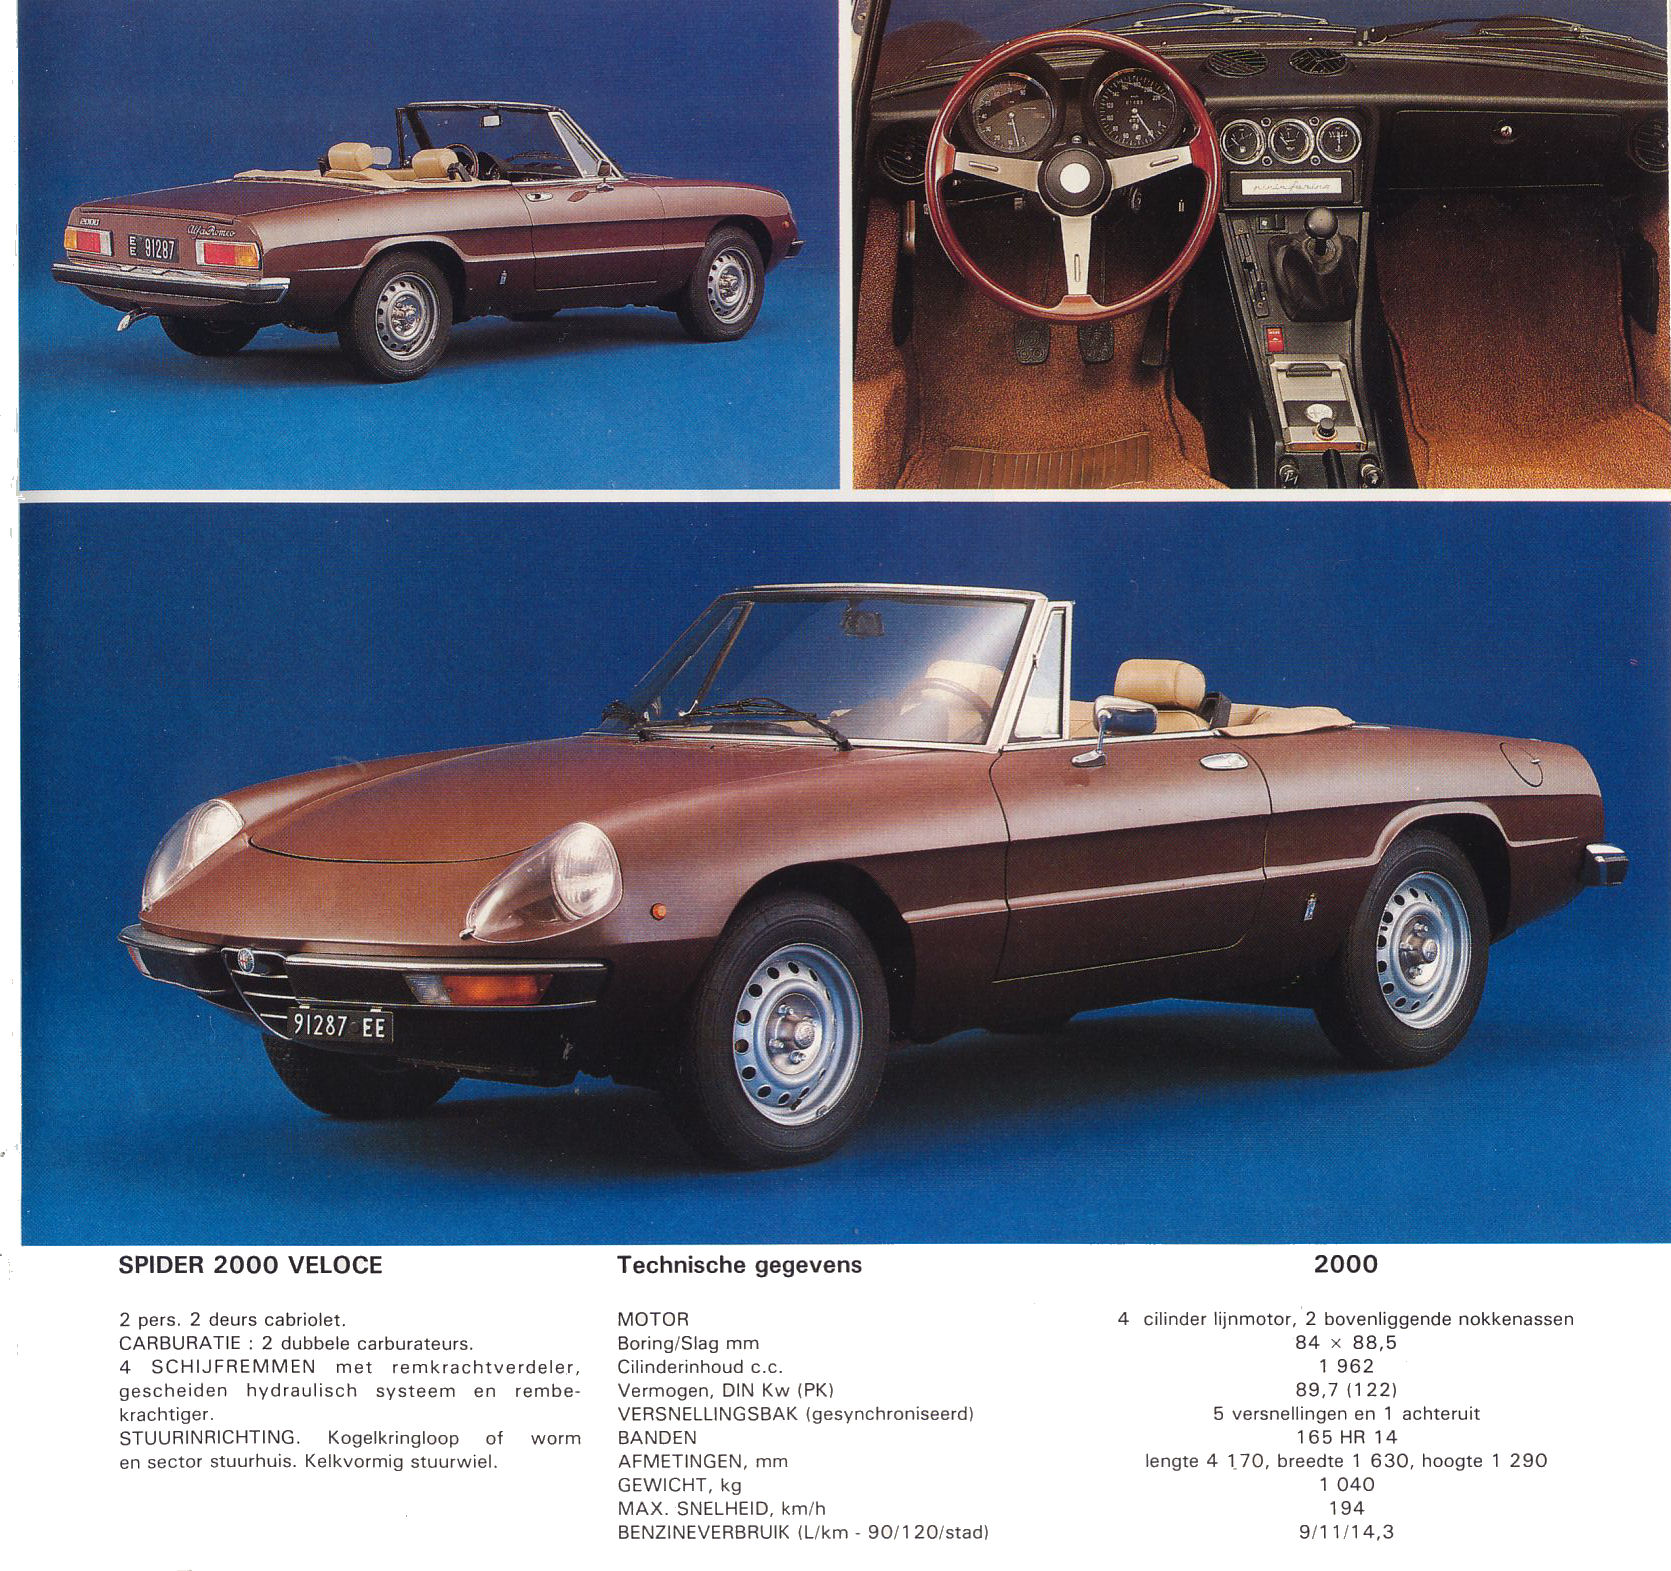 1000+ Images About Alfa Romeo Spider On Pinterest